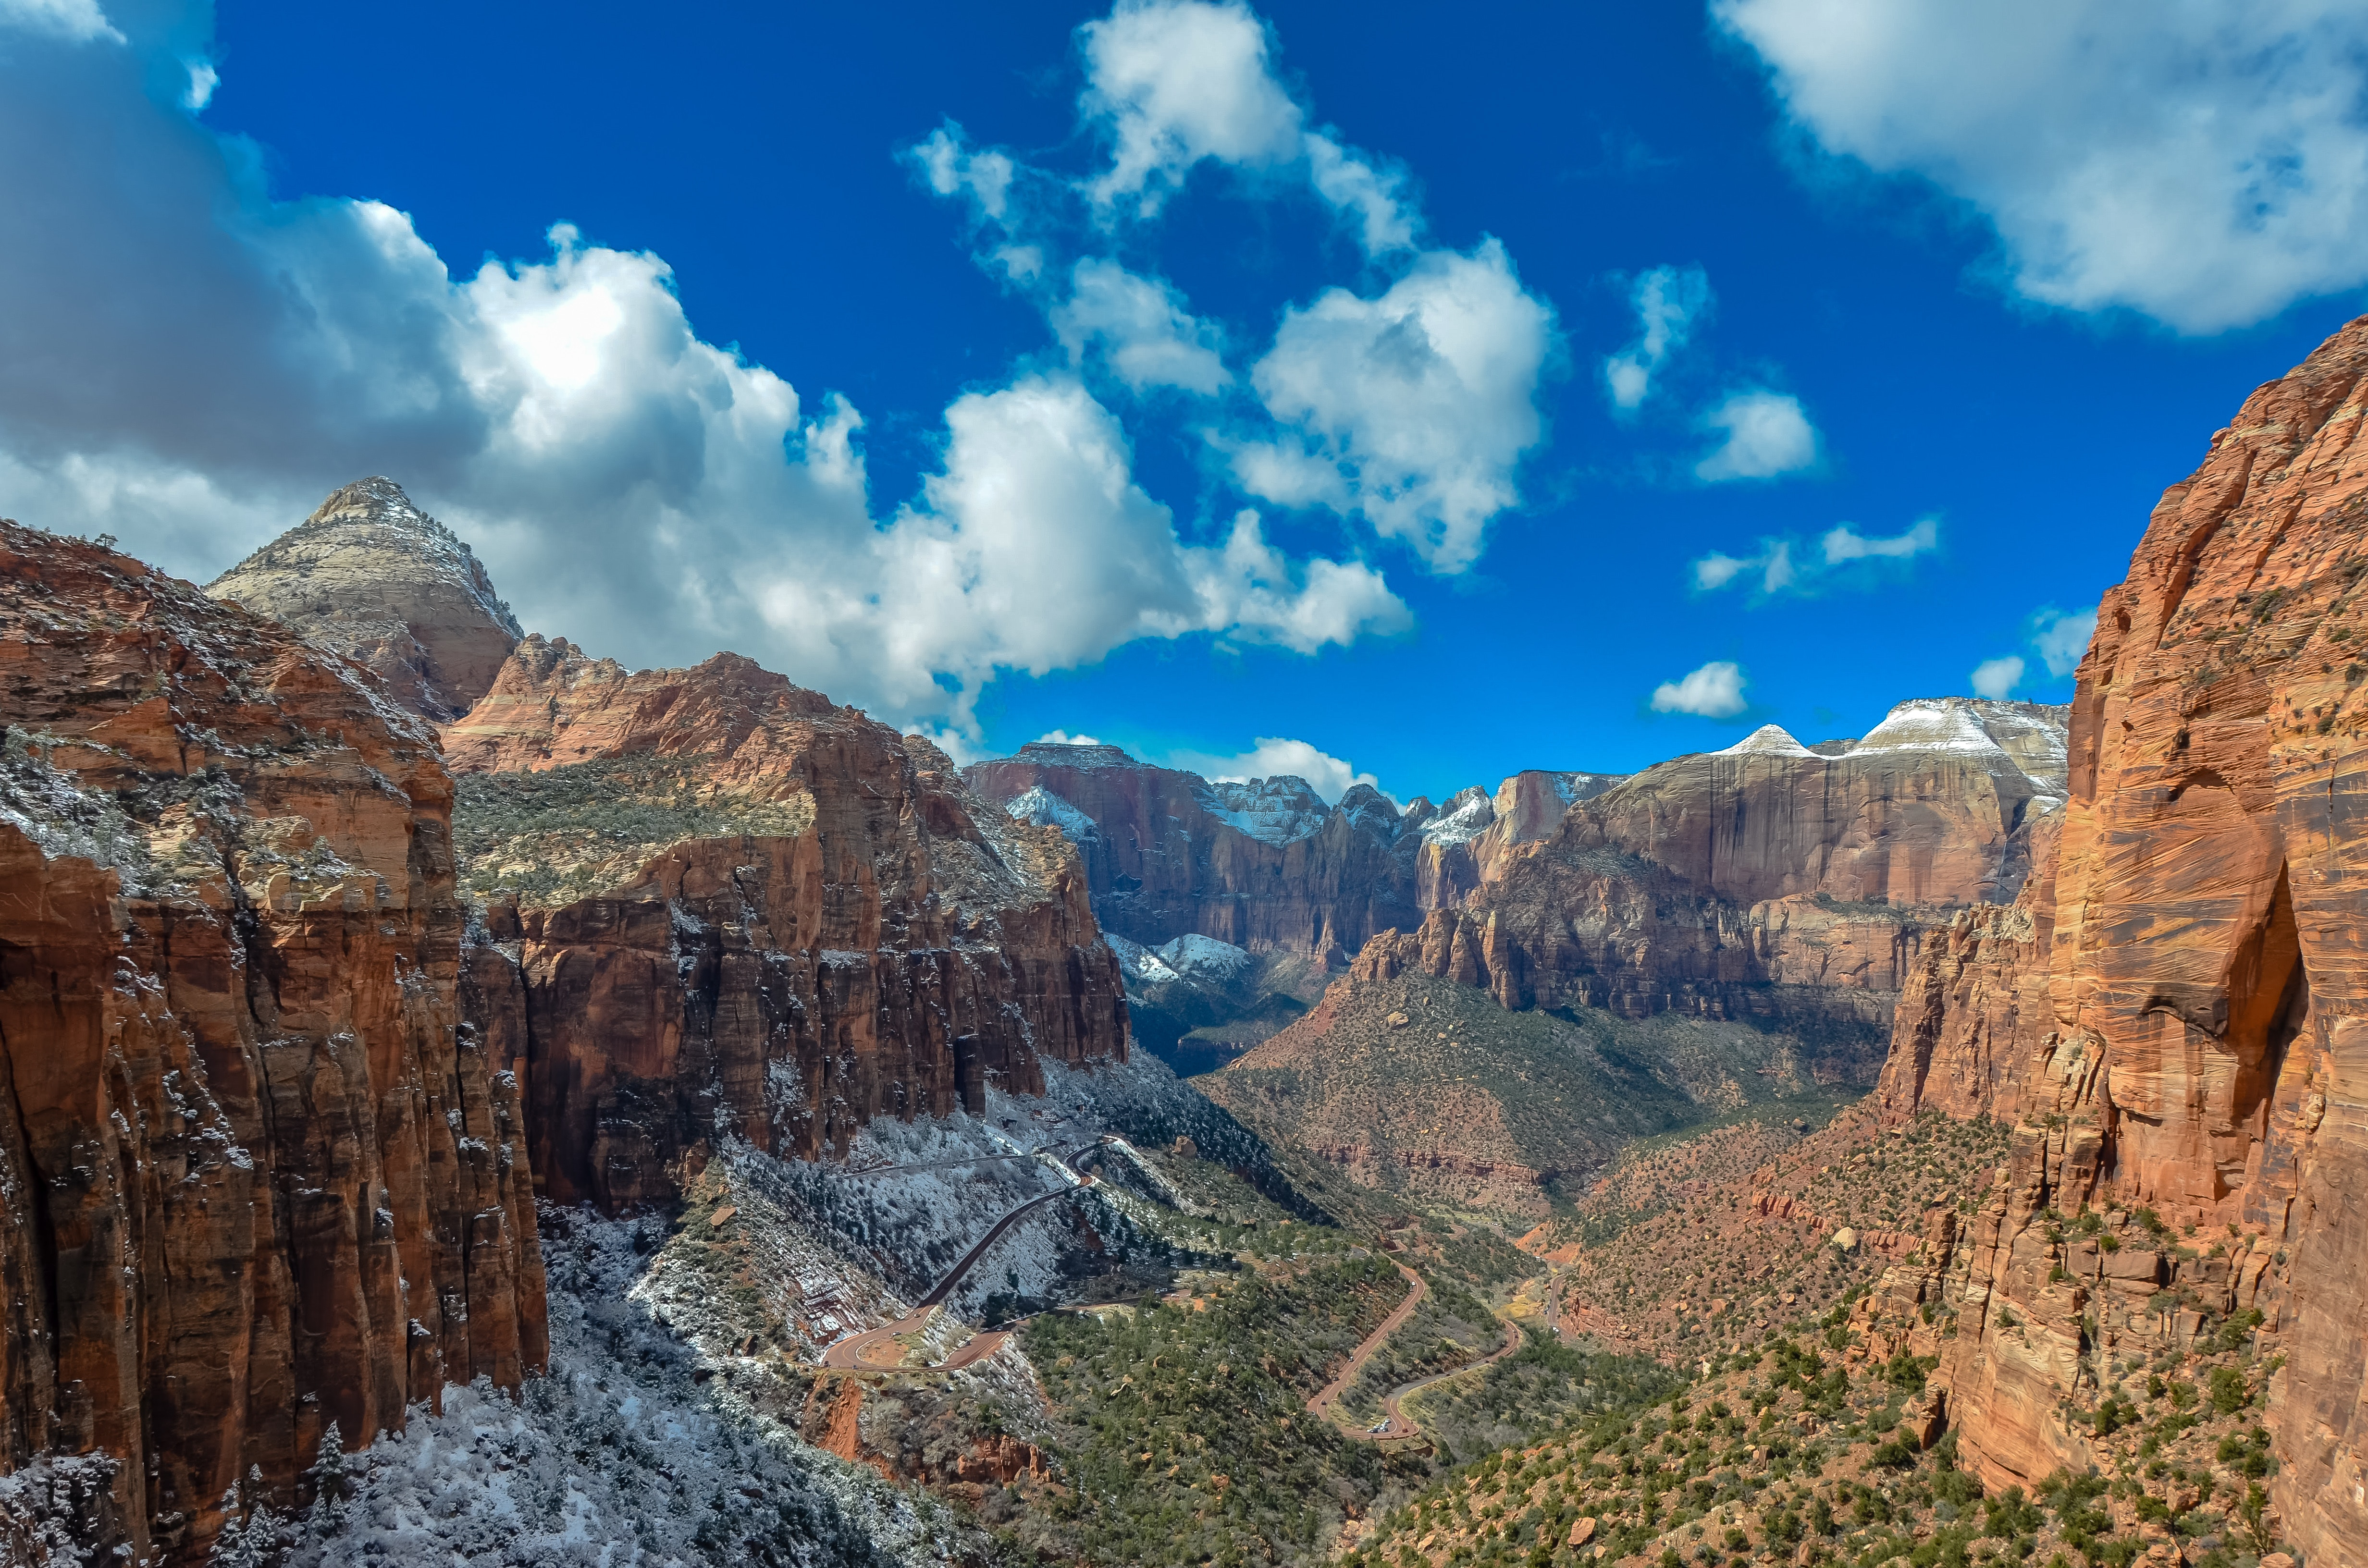 121804 Clouds Canyon Overlook Trail Zion National Park 4K 4928x3264